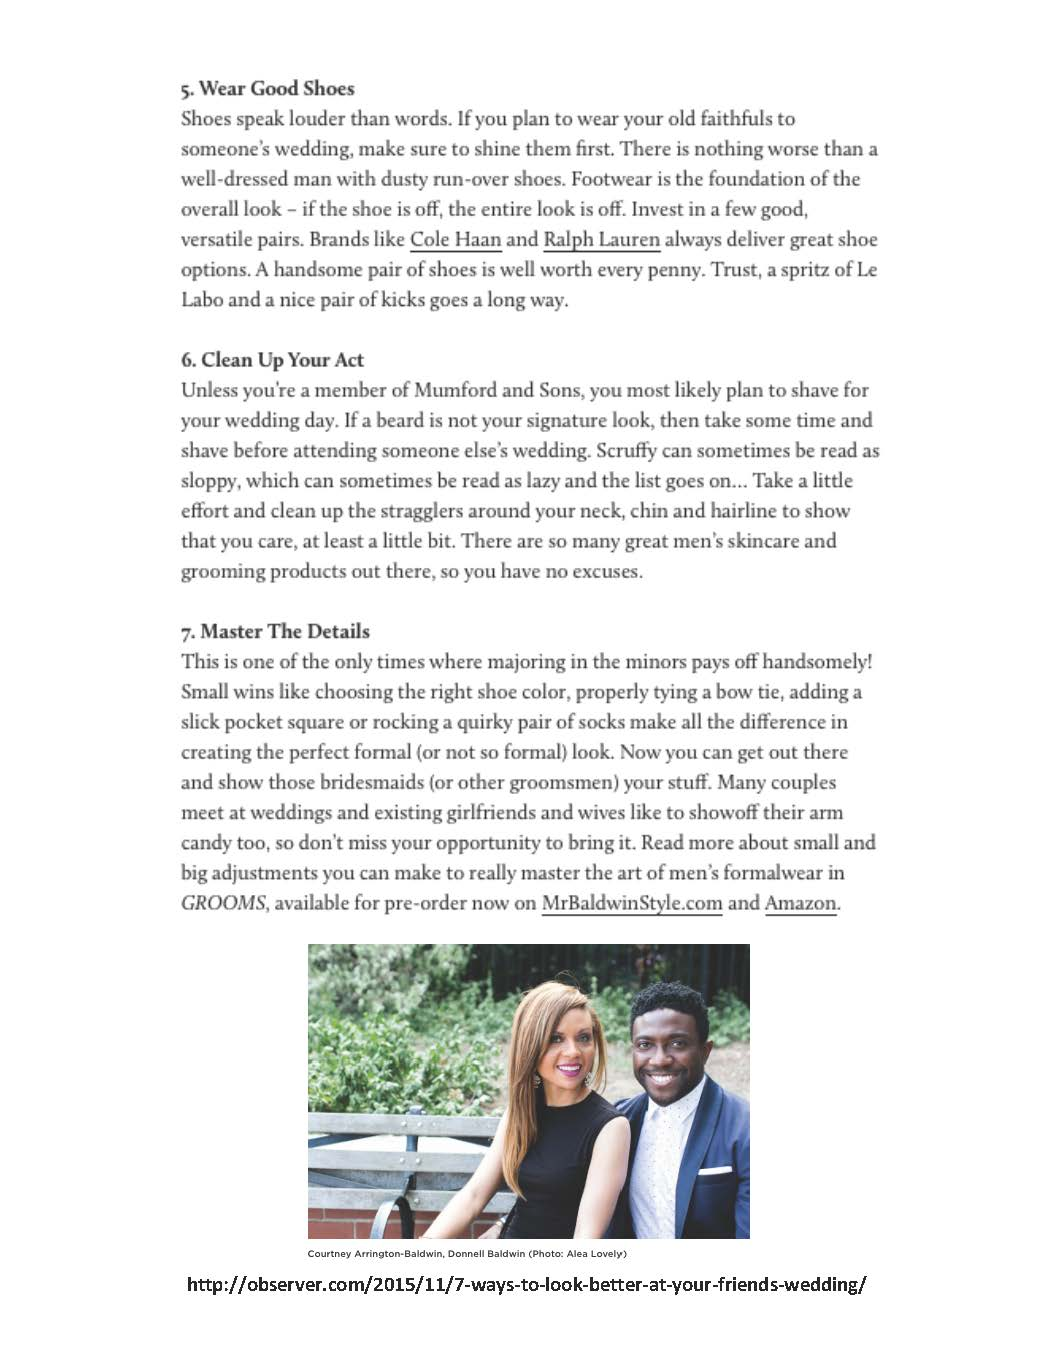 Observer.com - 11-23 Launch and Tips for Guests_Page_5.jpg